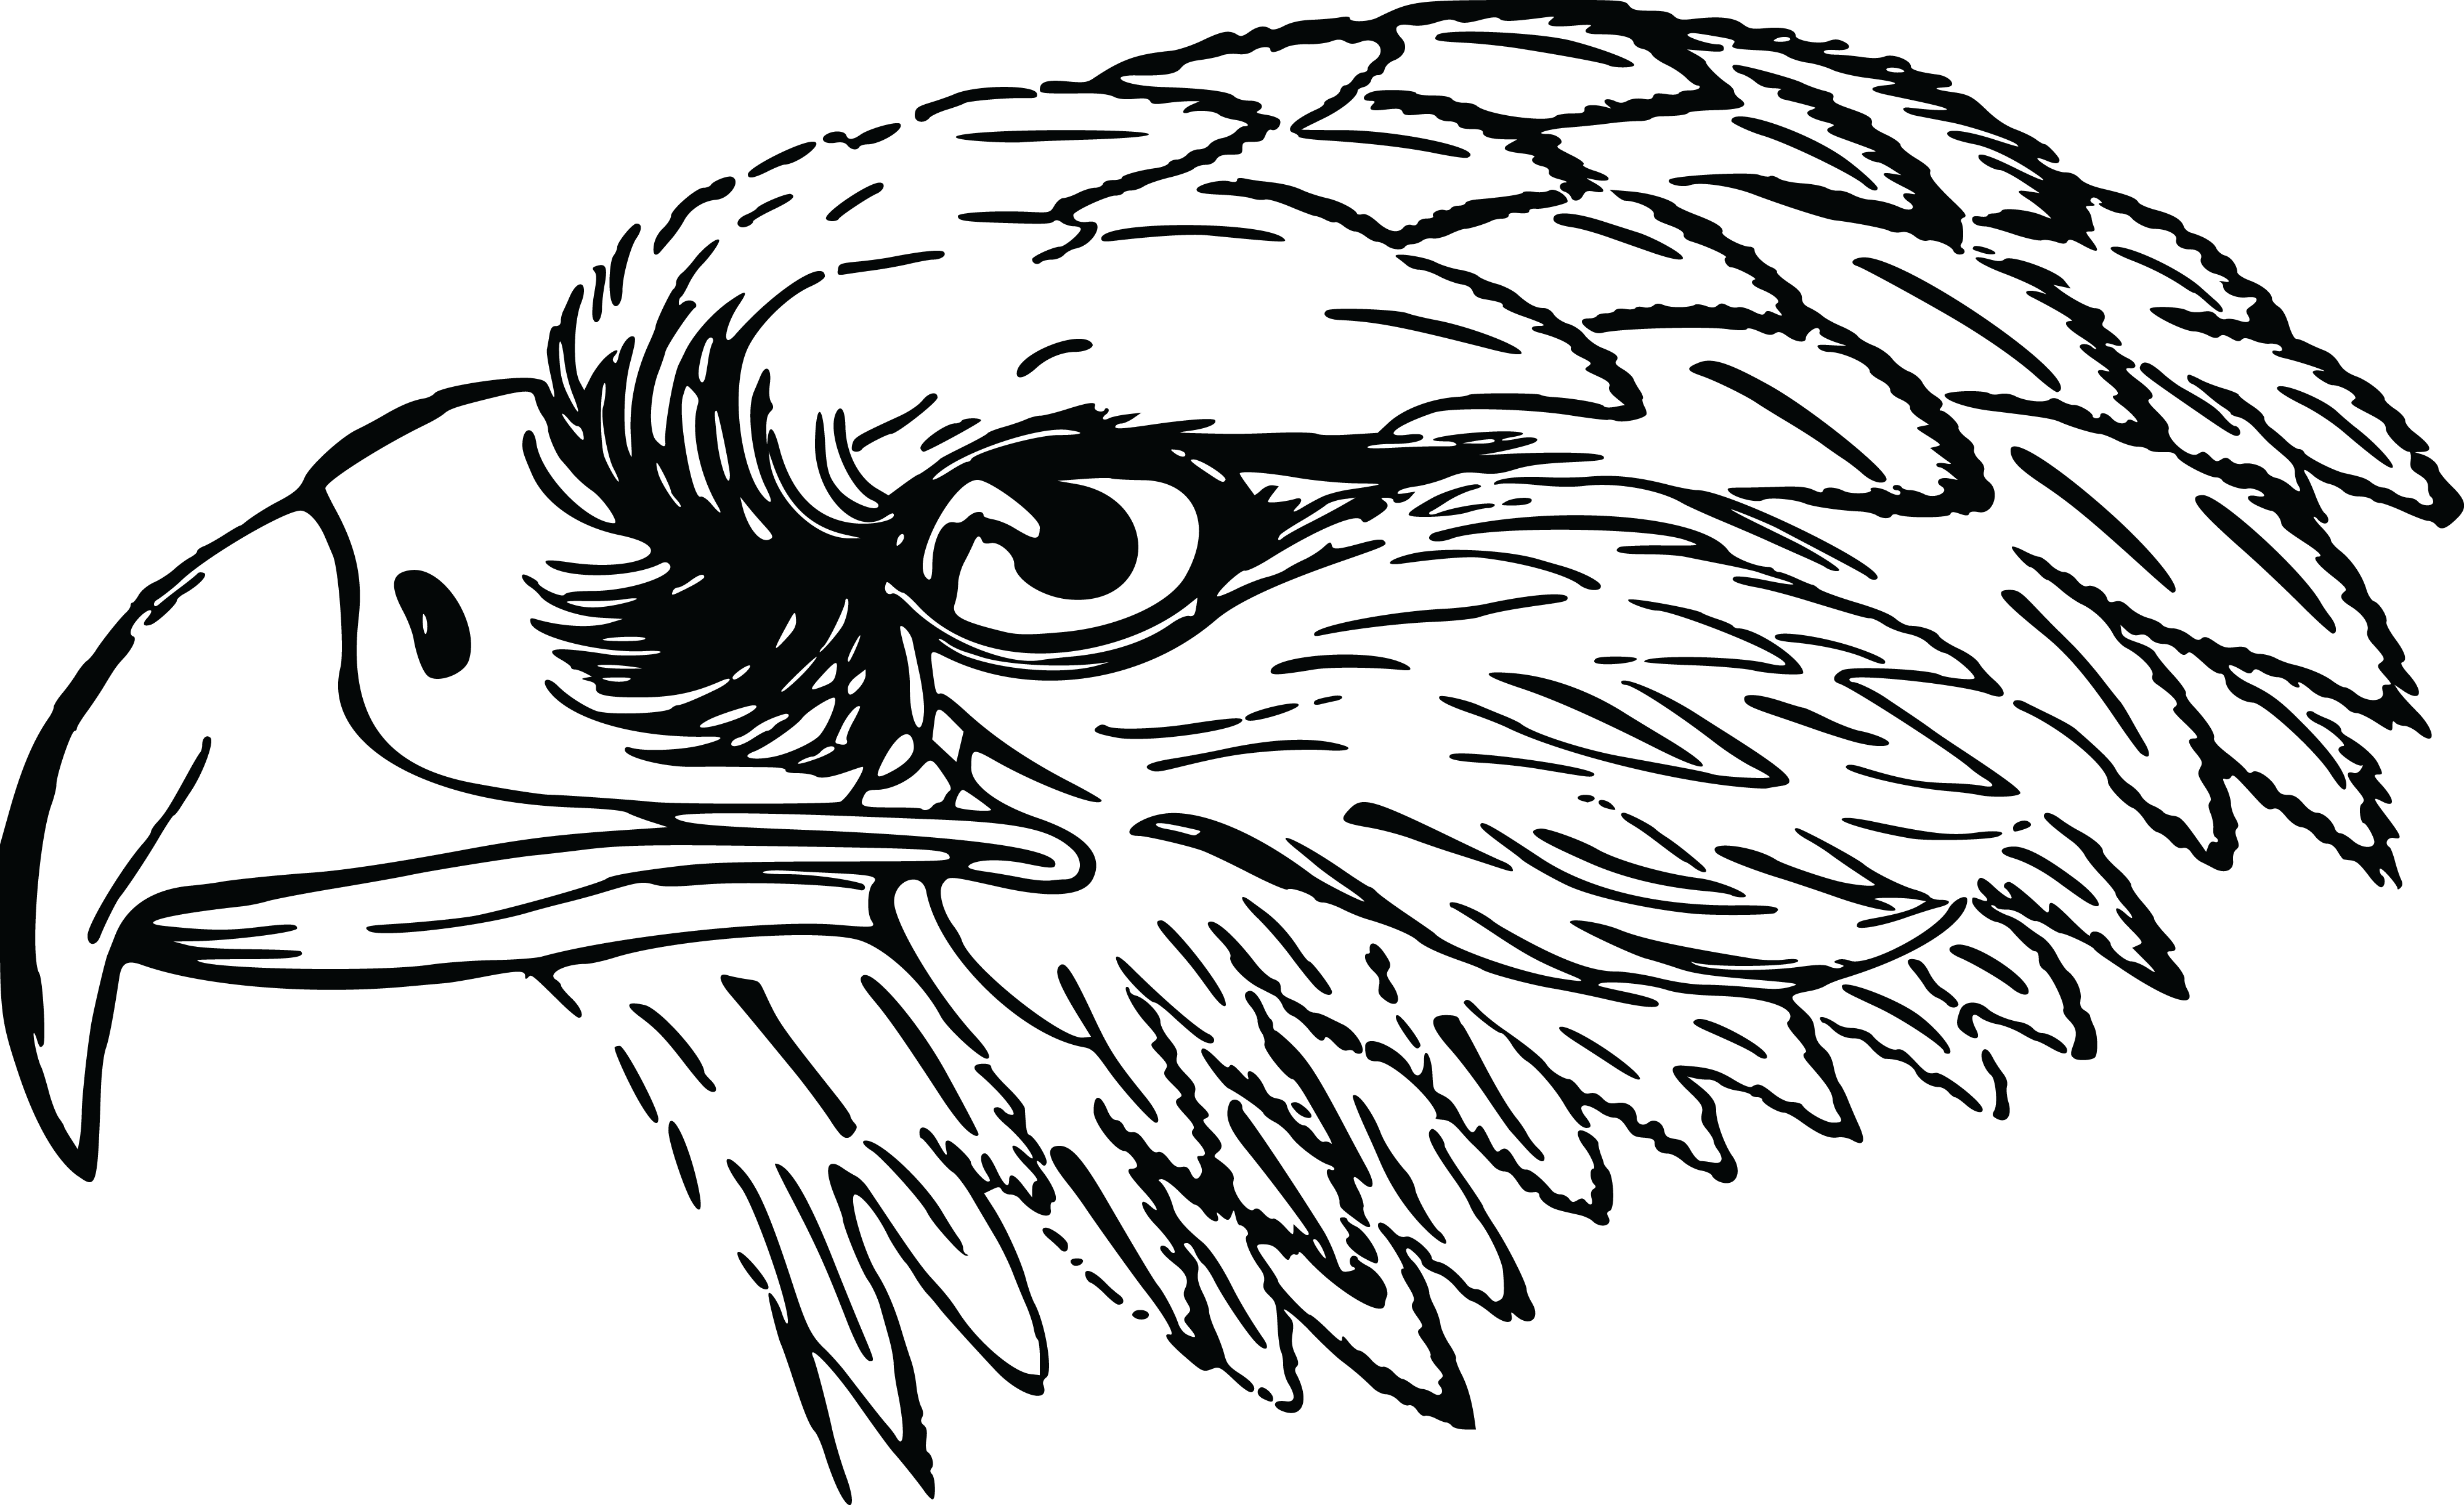 free clipart of a black and white falcon or eagle head